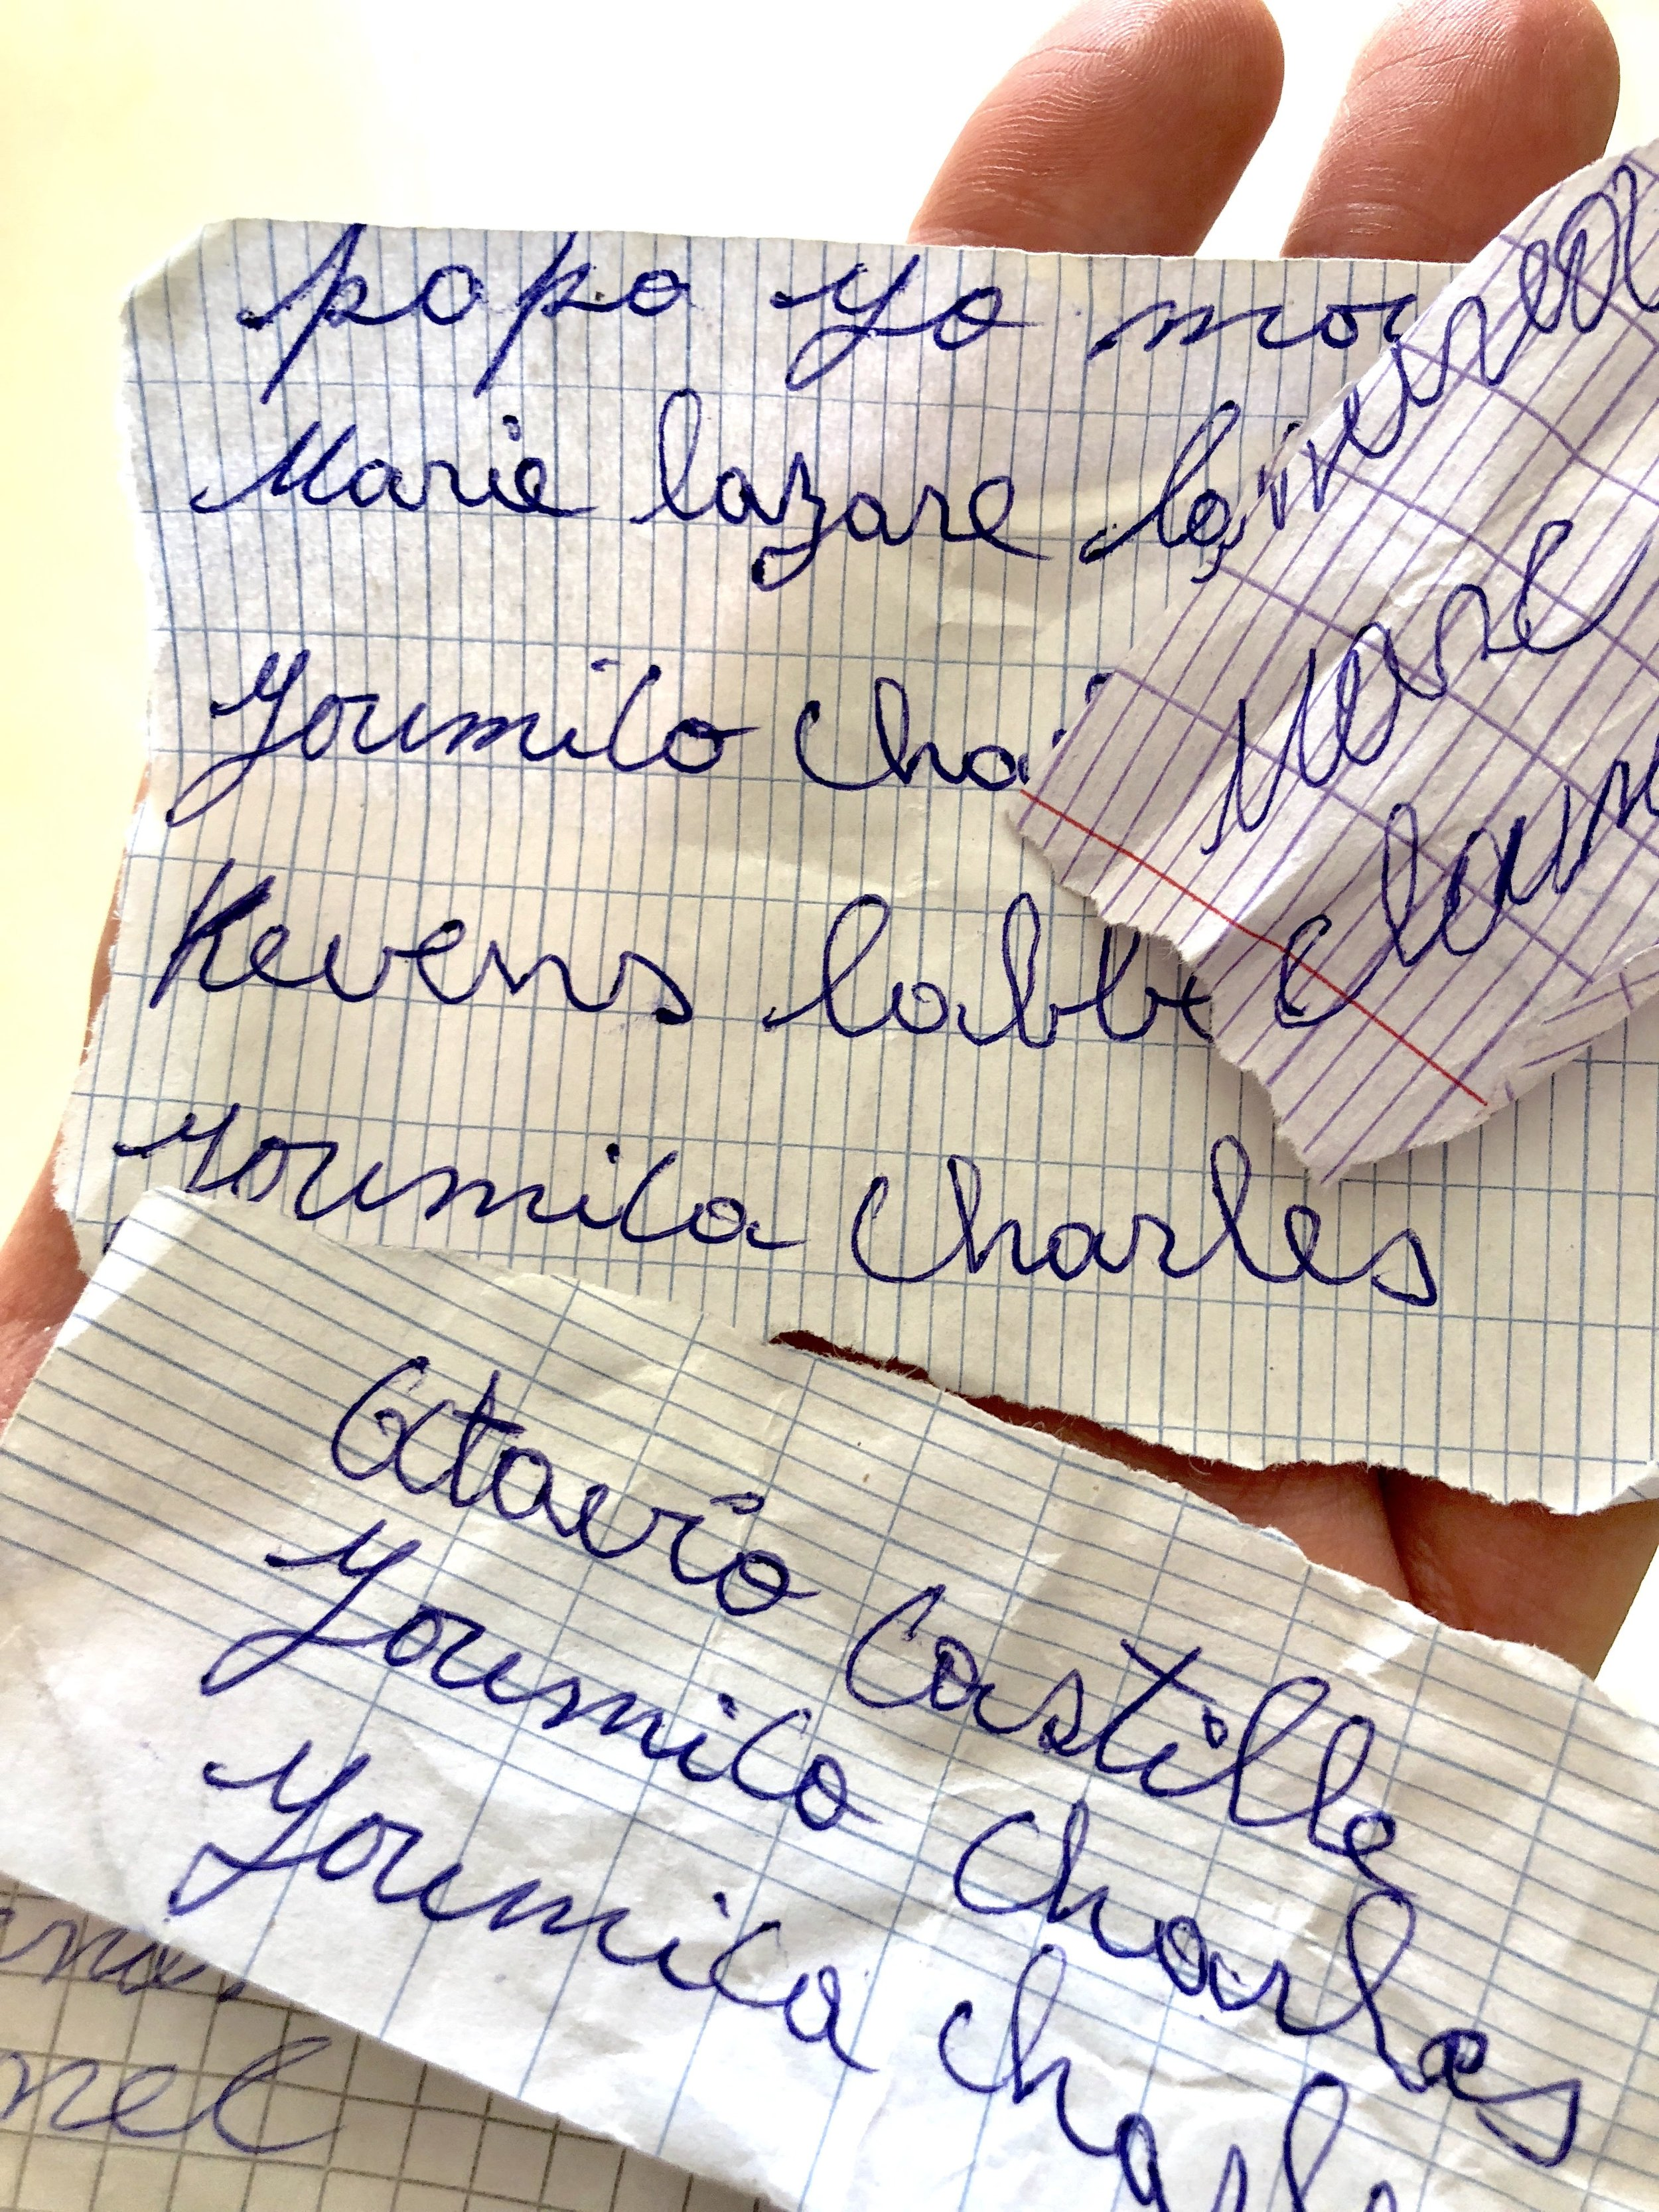 Notes of hope - Each year when we're in Haiti, parents hand us hundreds of tiny handwritten notes with the names of their children. Each is a wish to be added to our program for a chance to go to school. With your help, we can make these dreams come true.